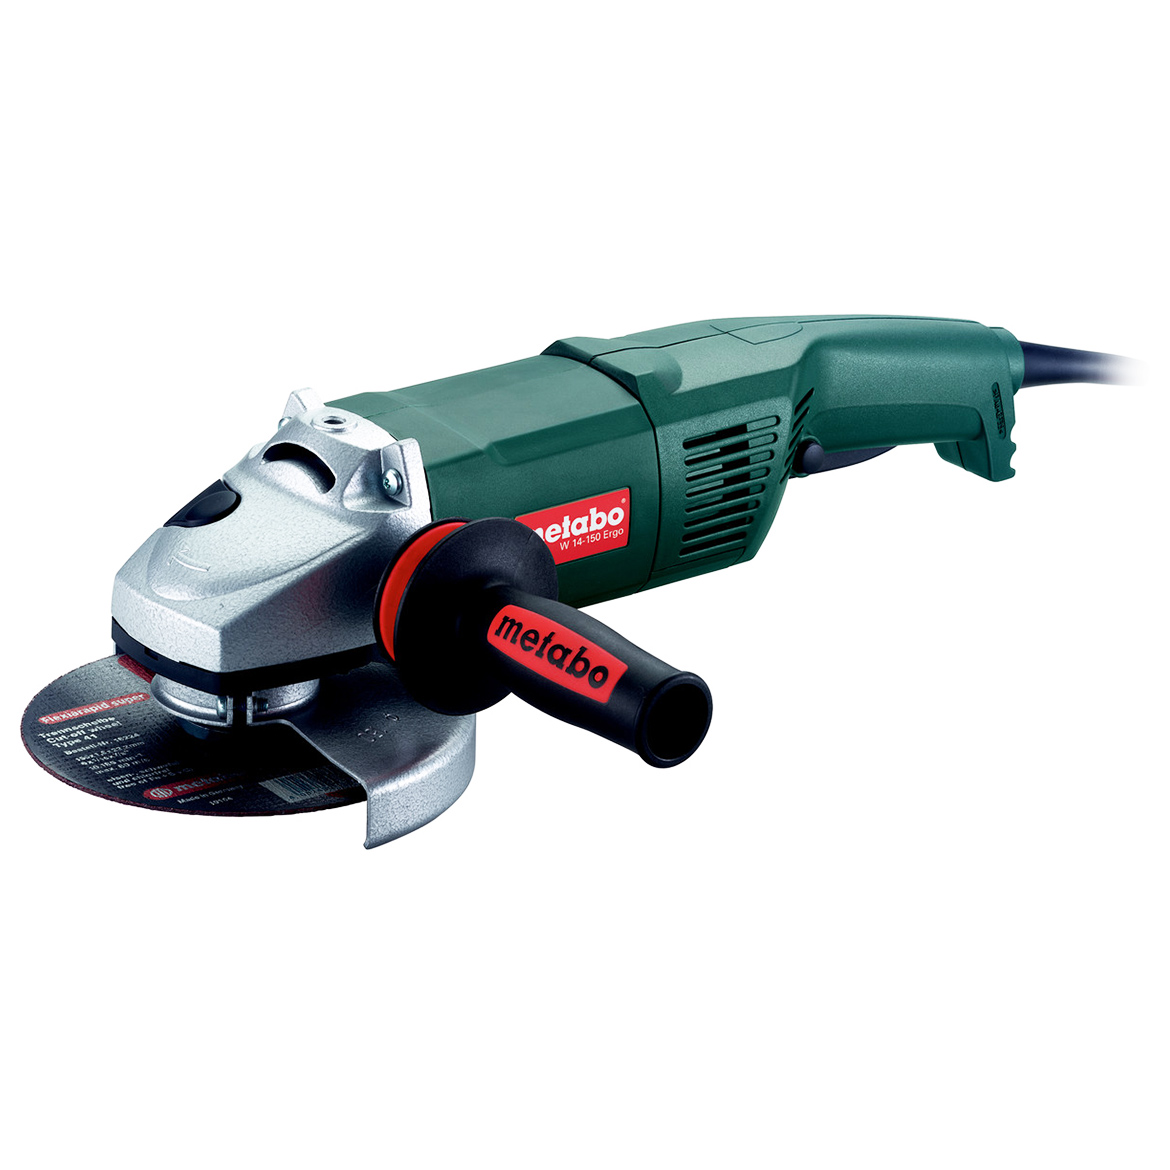 Metabo 606251440 6-Inch 12.0-Amp 9,700 RPM Angle Grinder ...